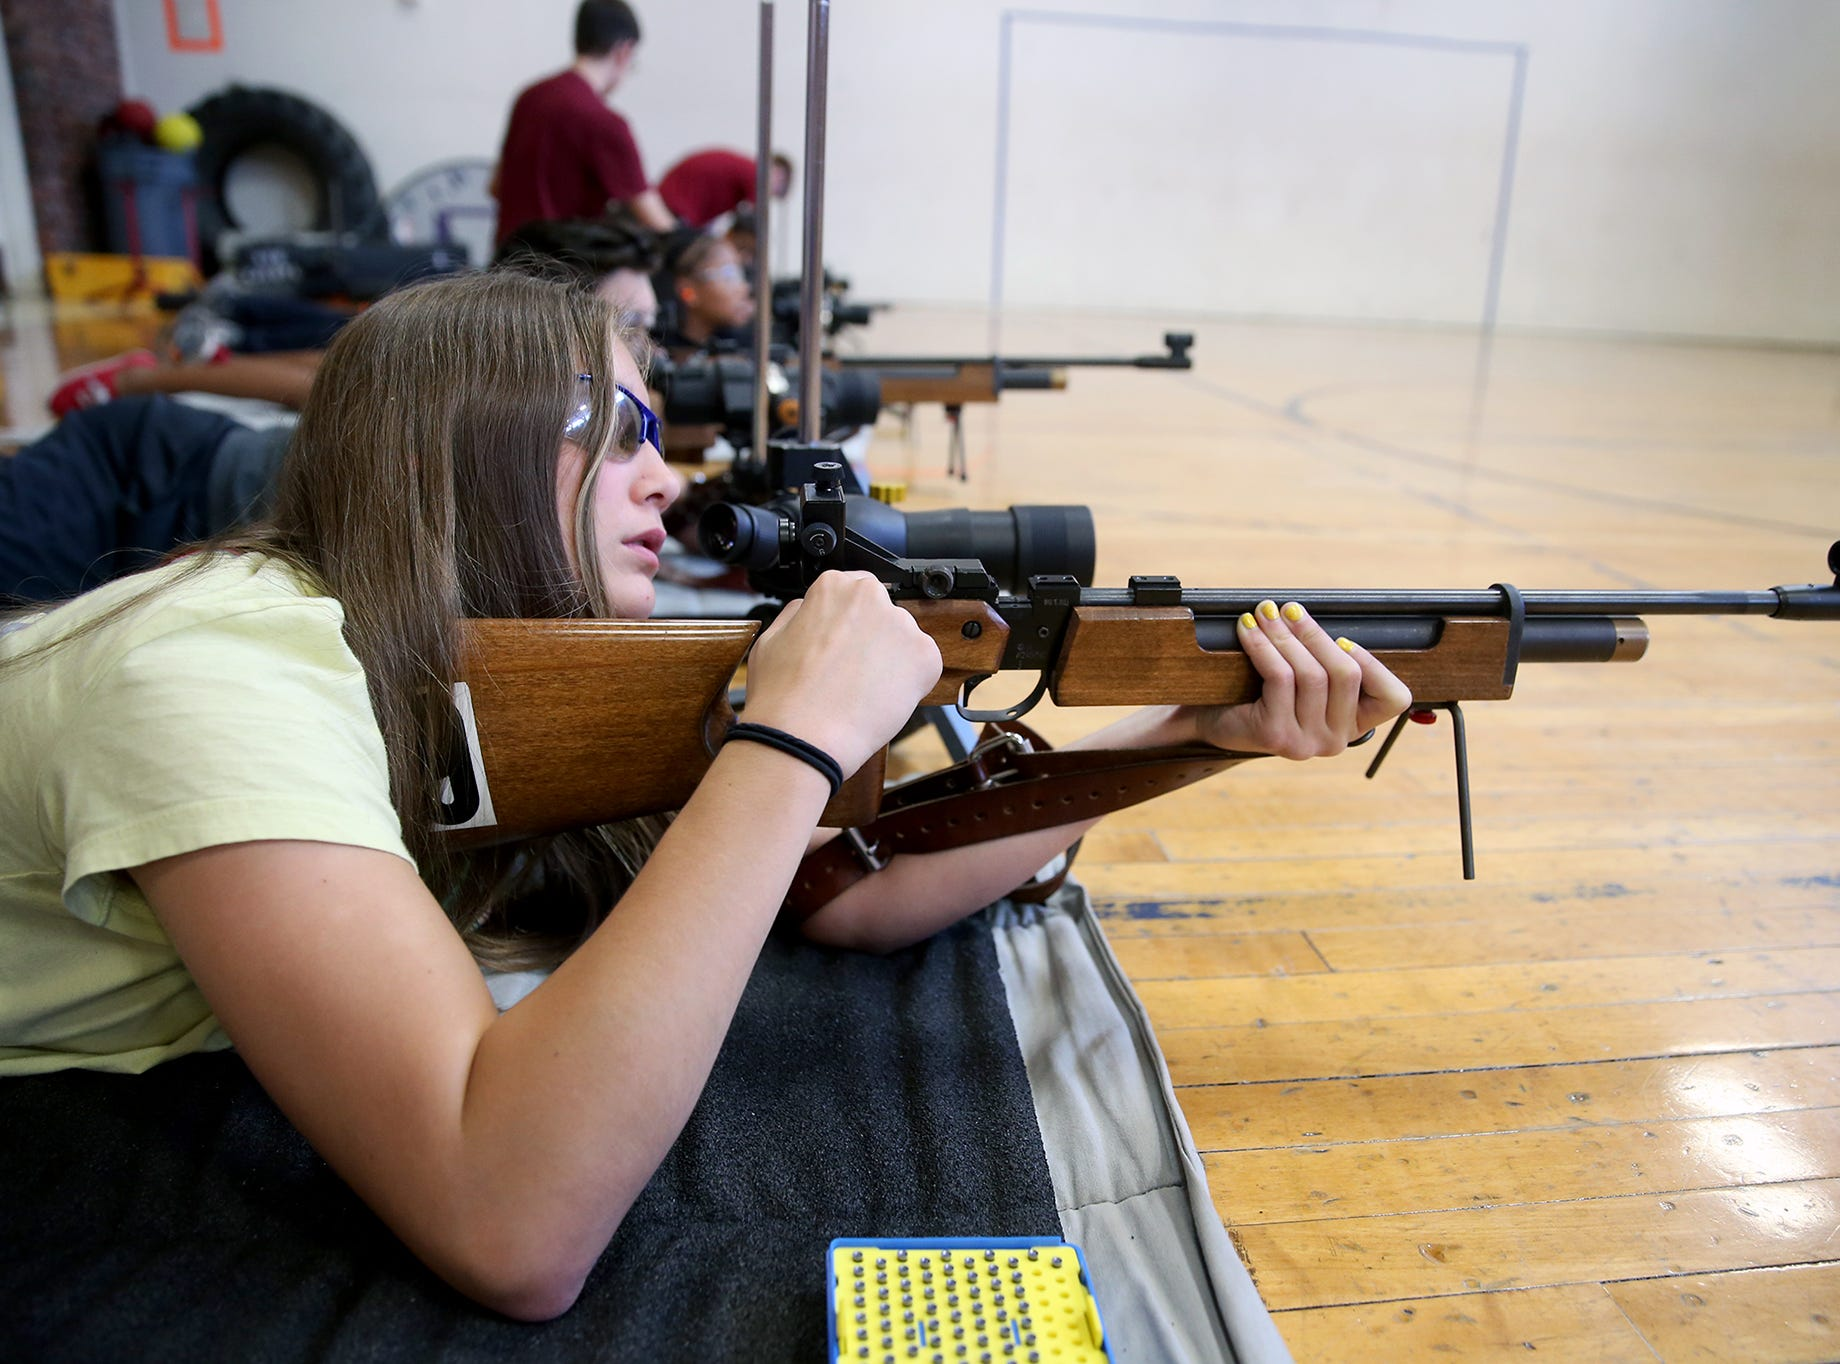 Hailey Roberts, 15, of Port Orchard loads her air rifle at the South Kitsap High School NJROTC Wolf Battalion Rifle Camp runs from August 8-10, at the National Guard Armory in Port Orchard.The camp teaches rifle safety, and shooting technics.She is a student in the Sk NJROTC program,